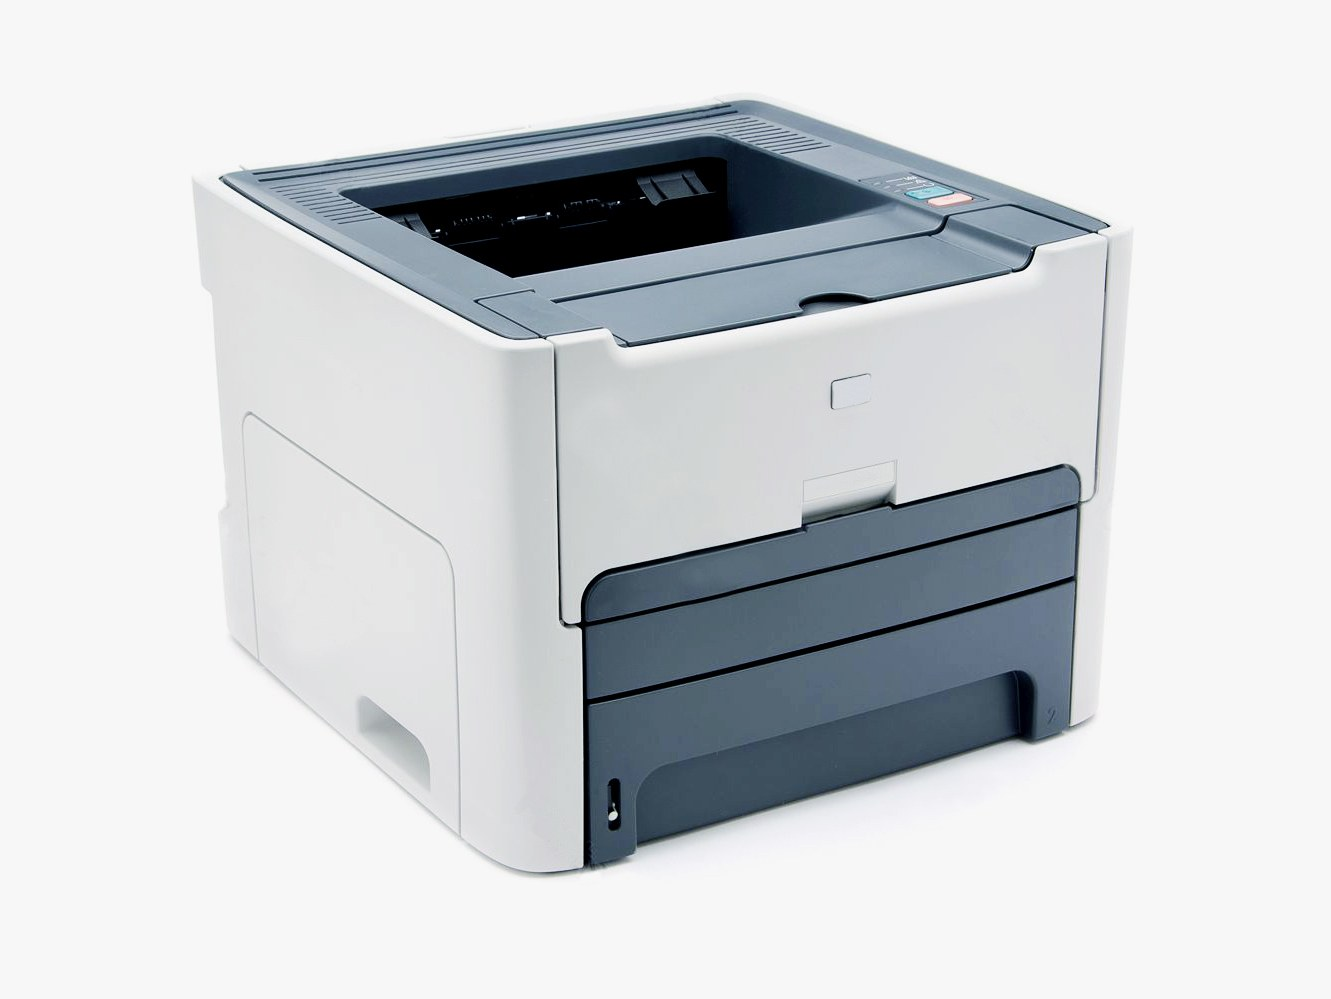 securityprinter